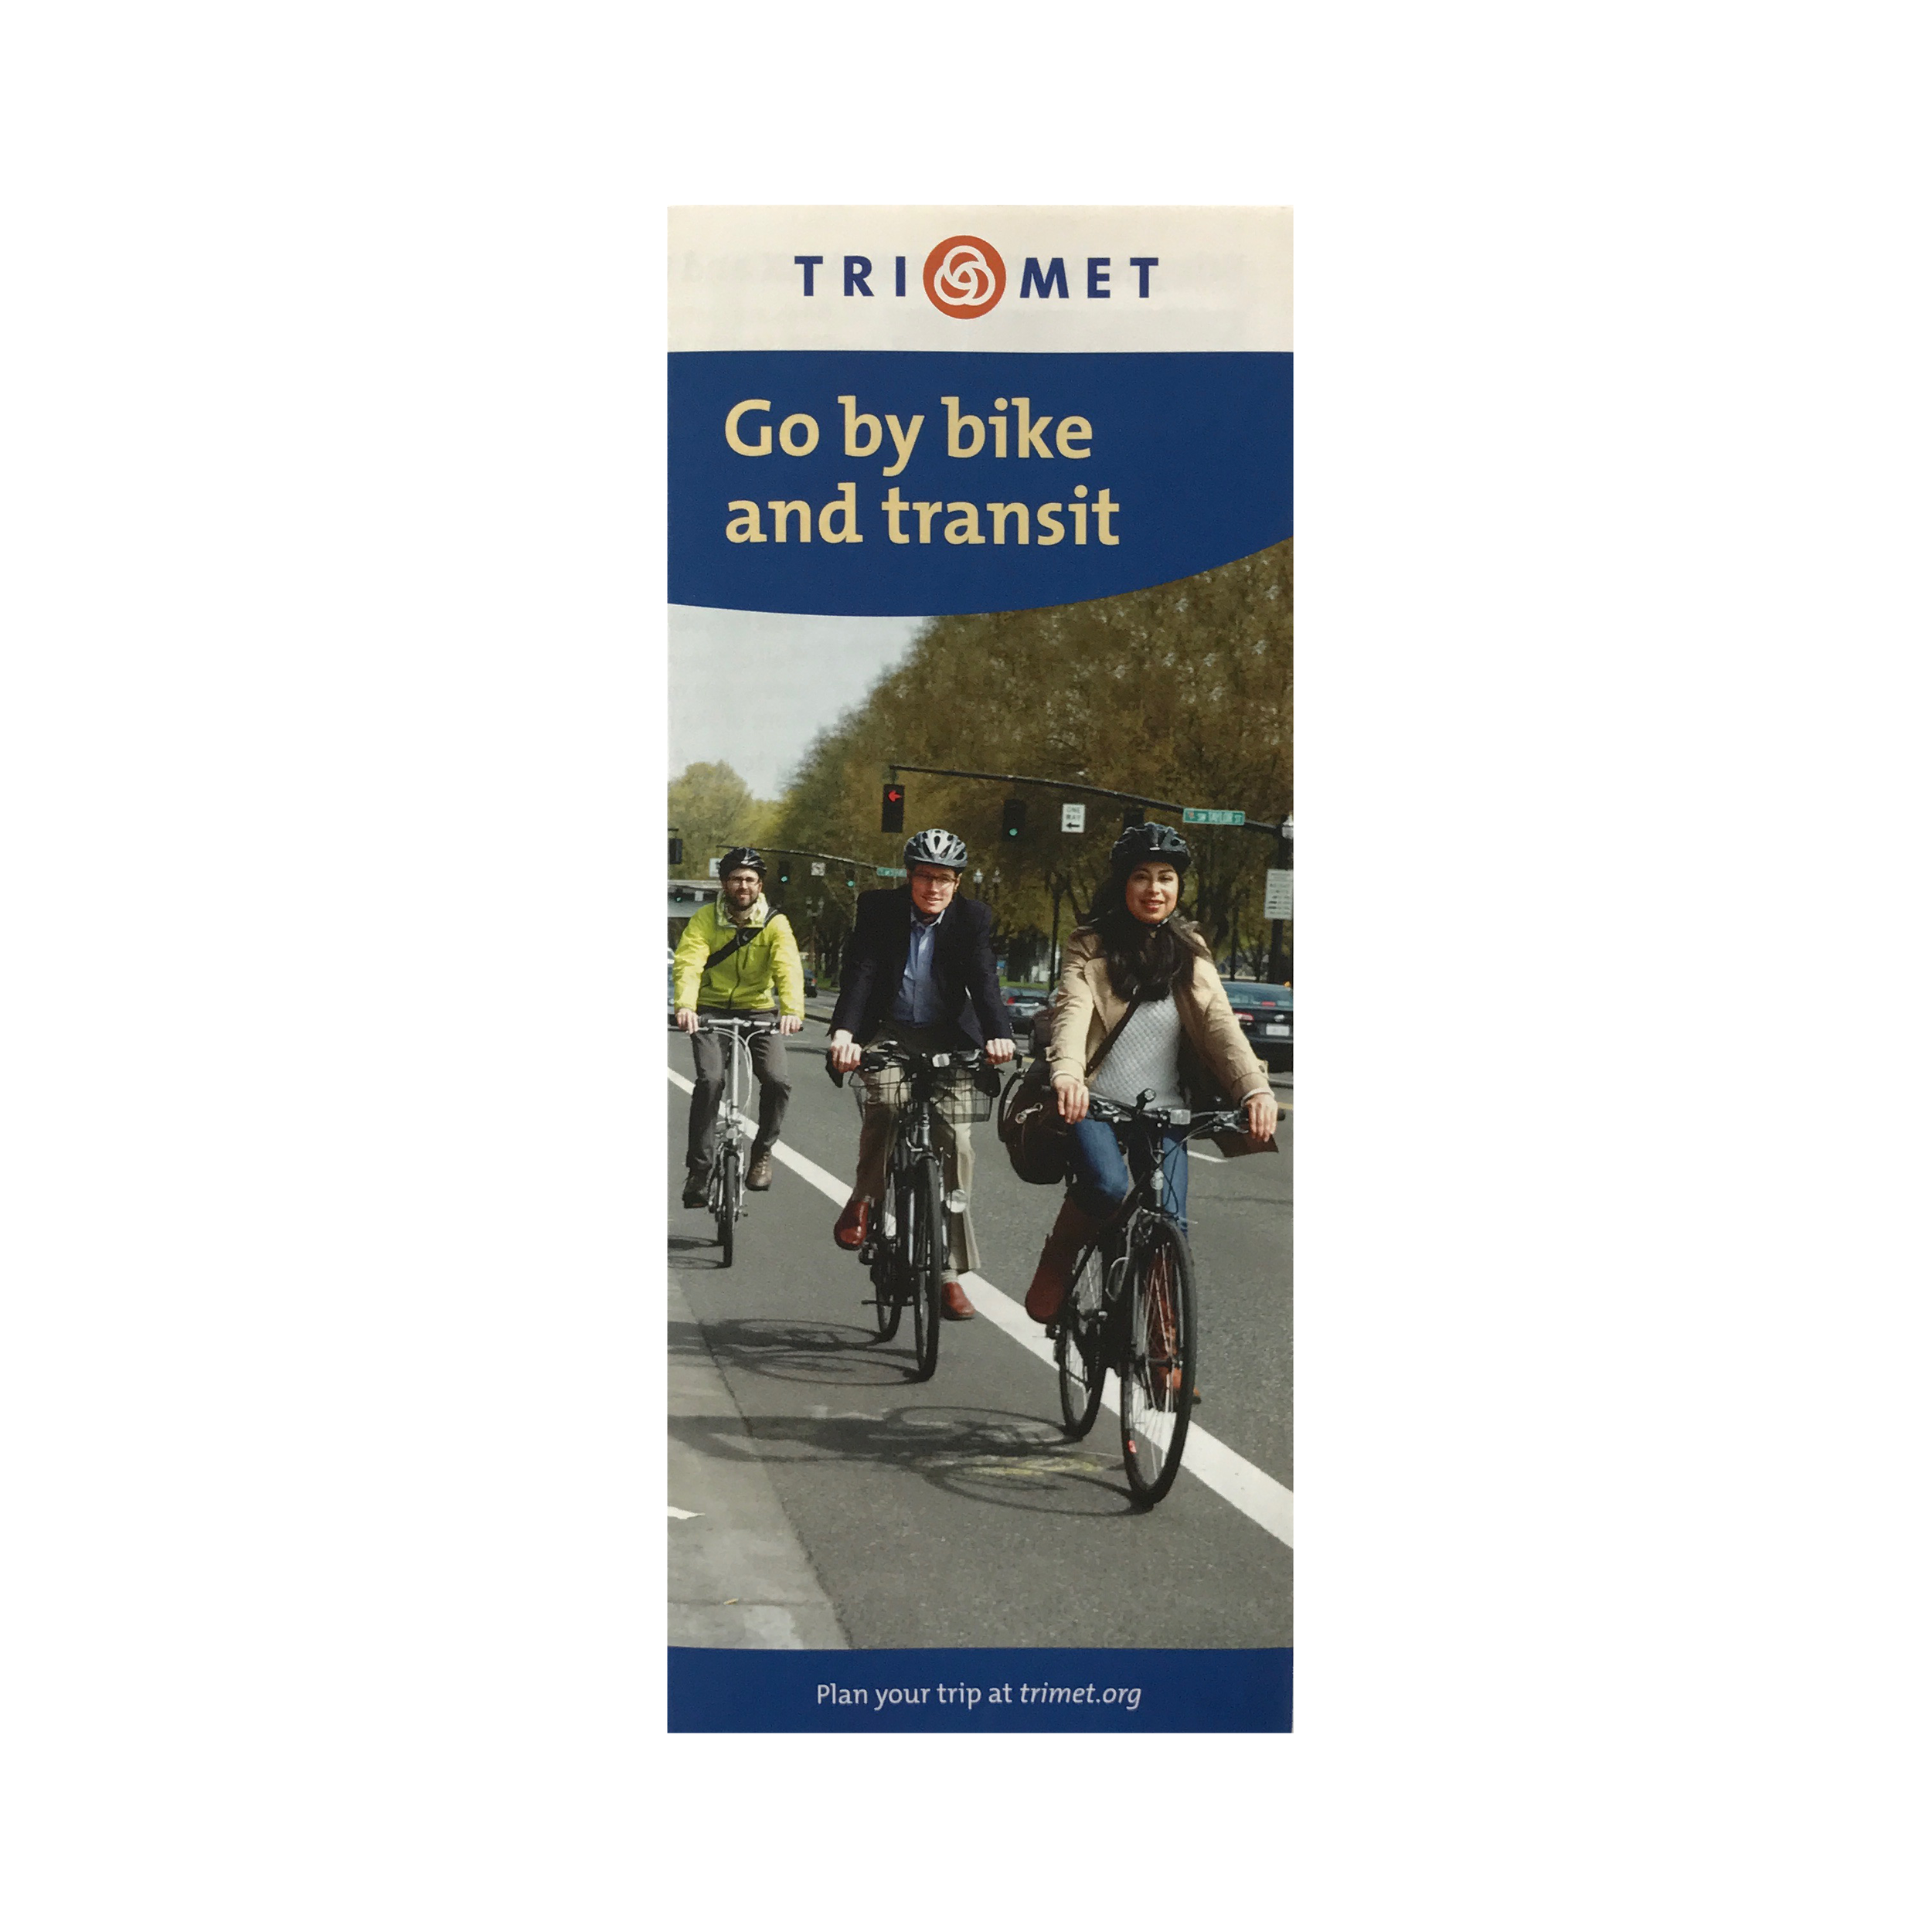 TriMet Go by Bike and Transit